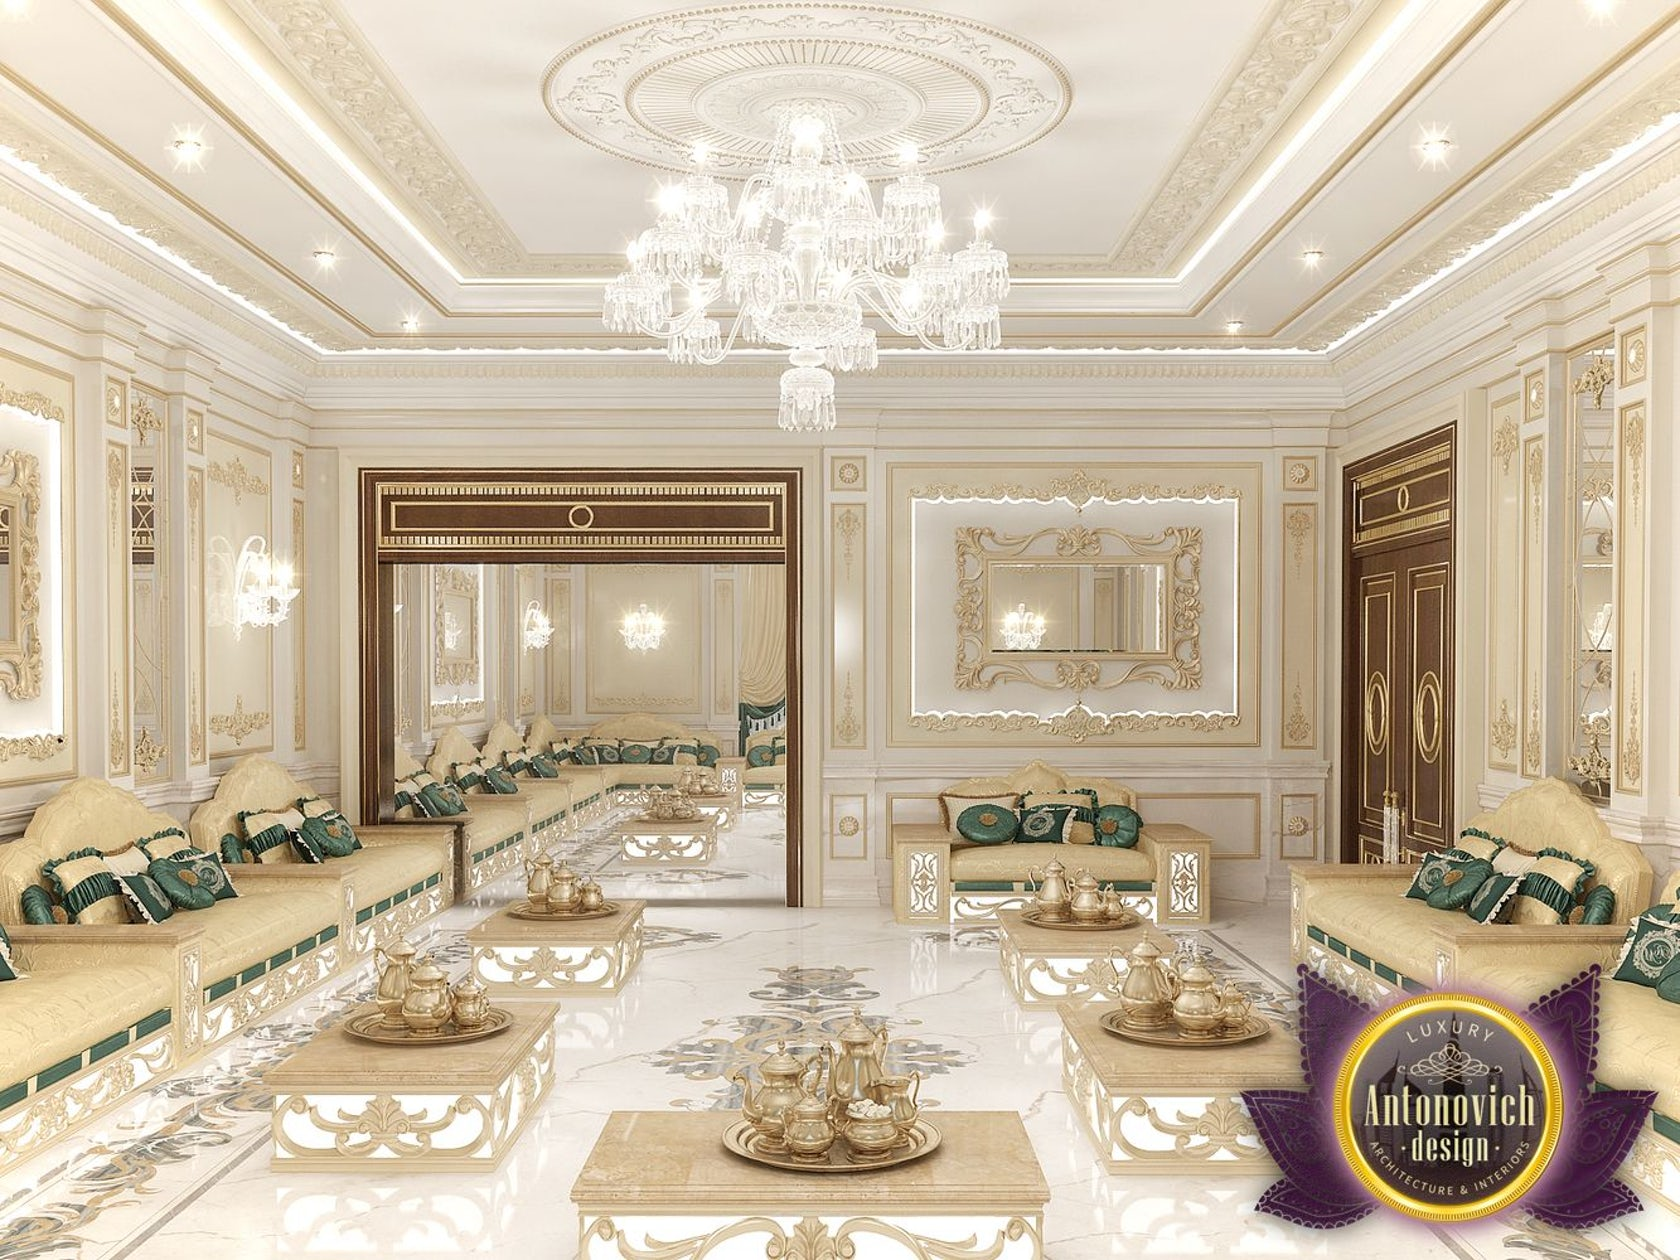 Arabic Majlis Interior Design From Luxury Antonovich